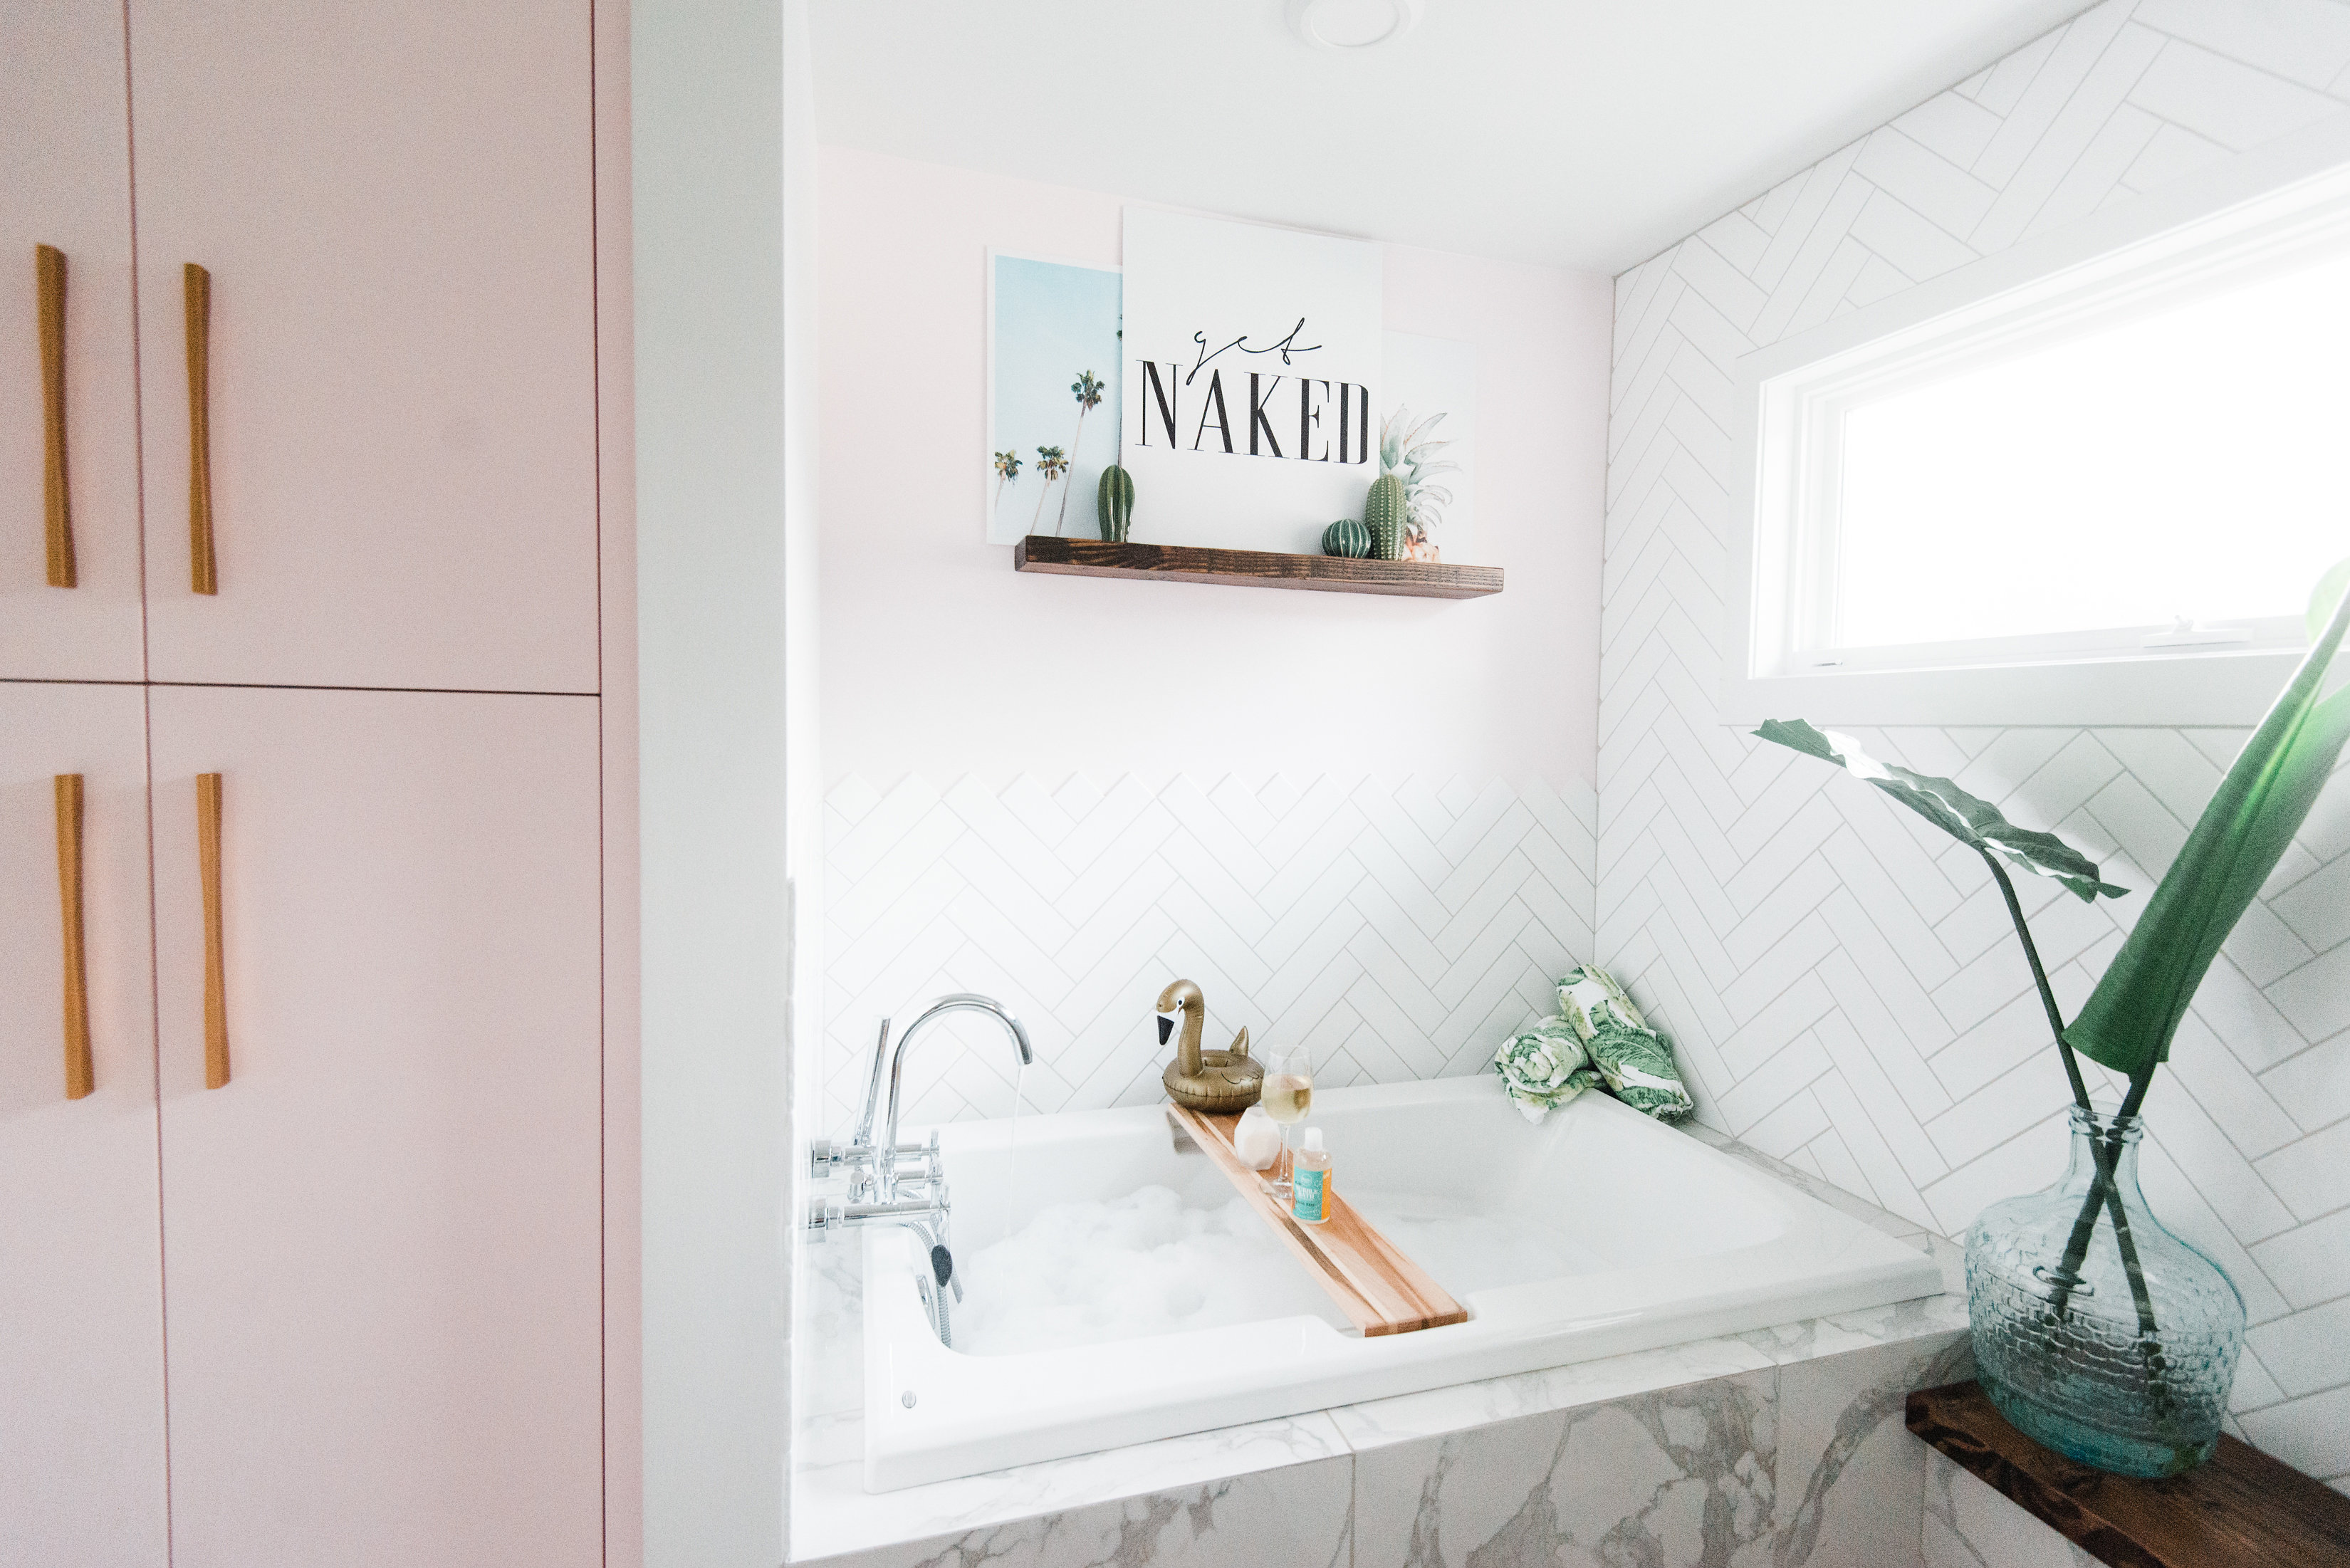 Beauty || My Bathroom Oasis with @RockyMtnSoap #partner ...